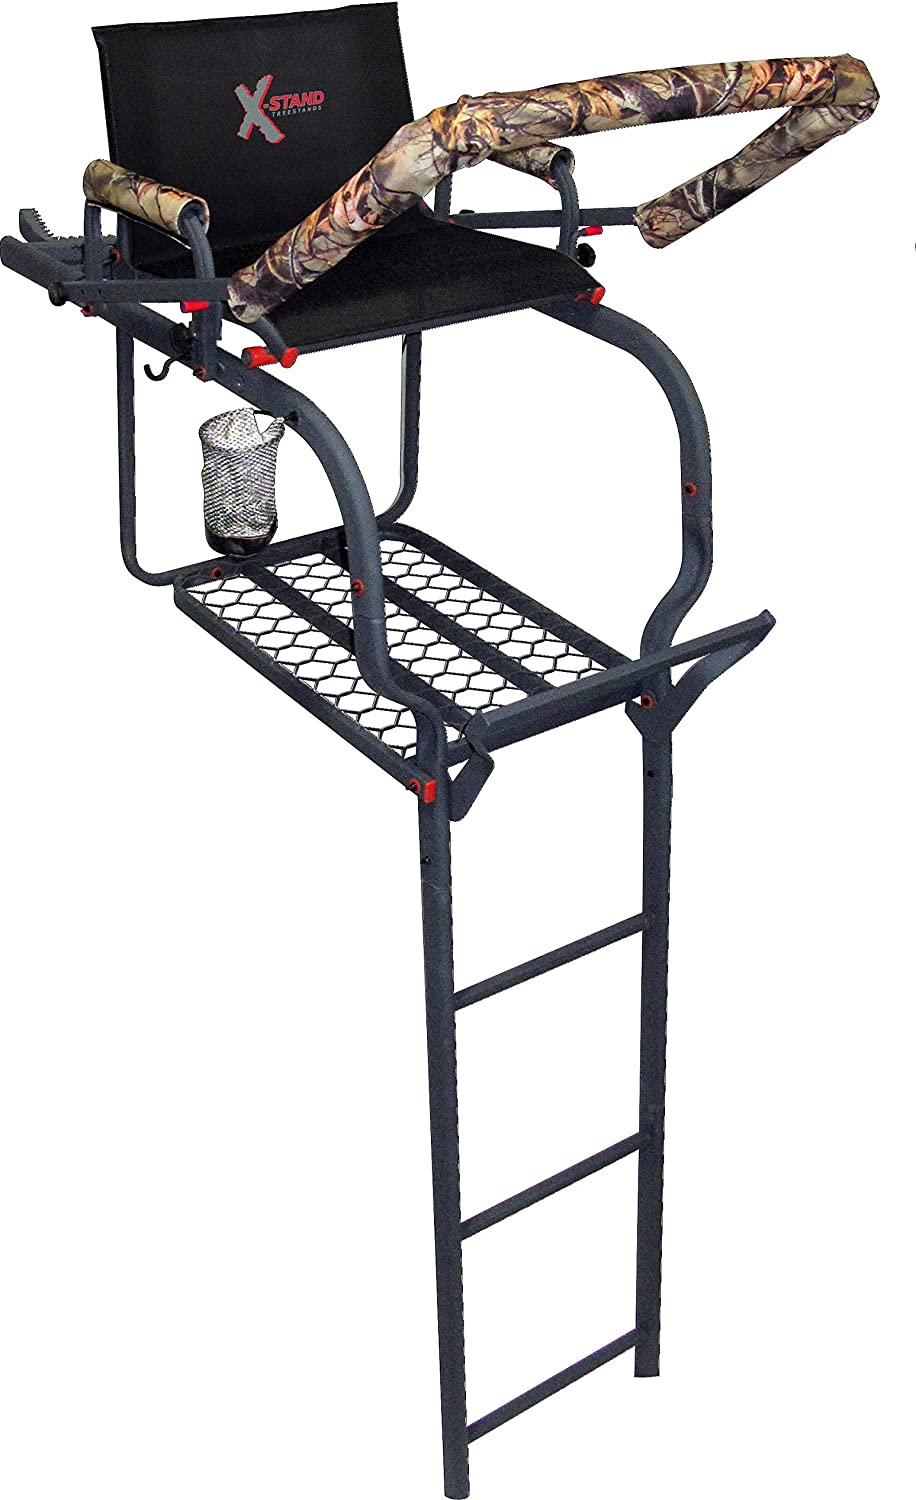 XStand The Duke Ladder Stand, Black